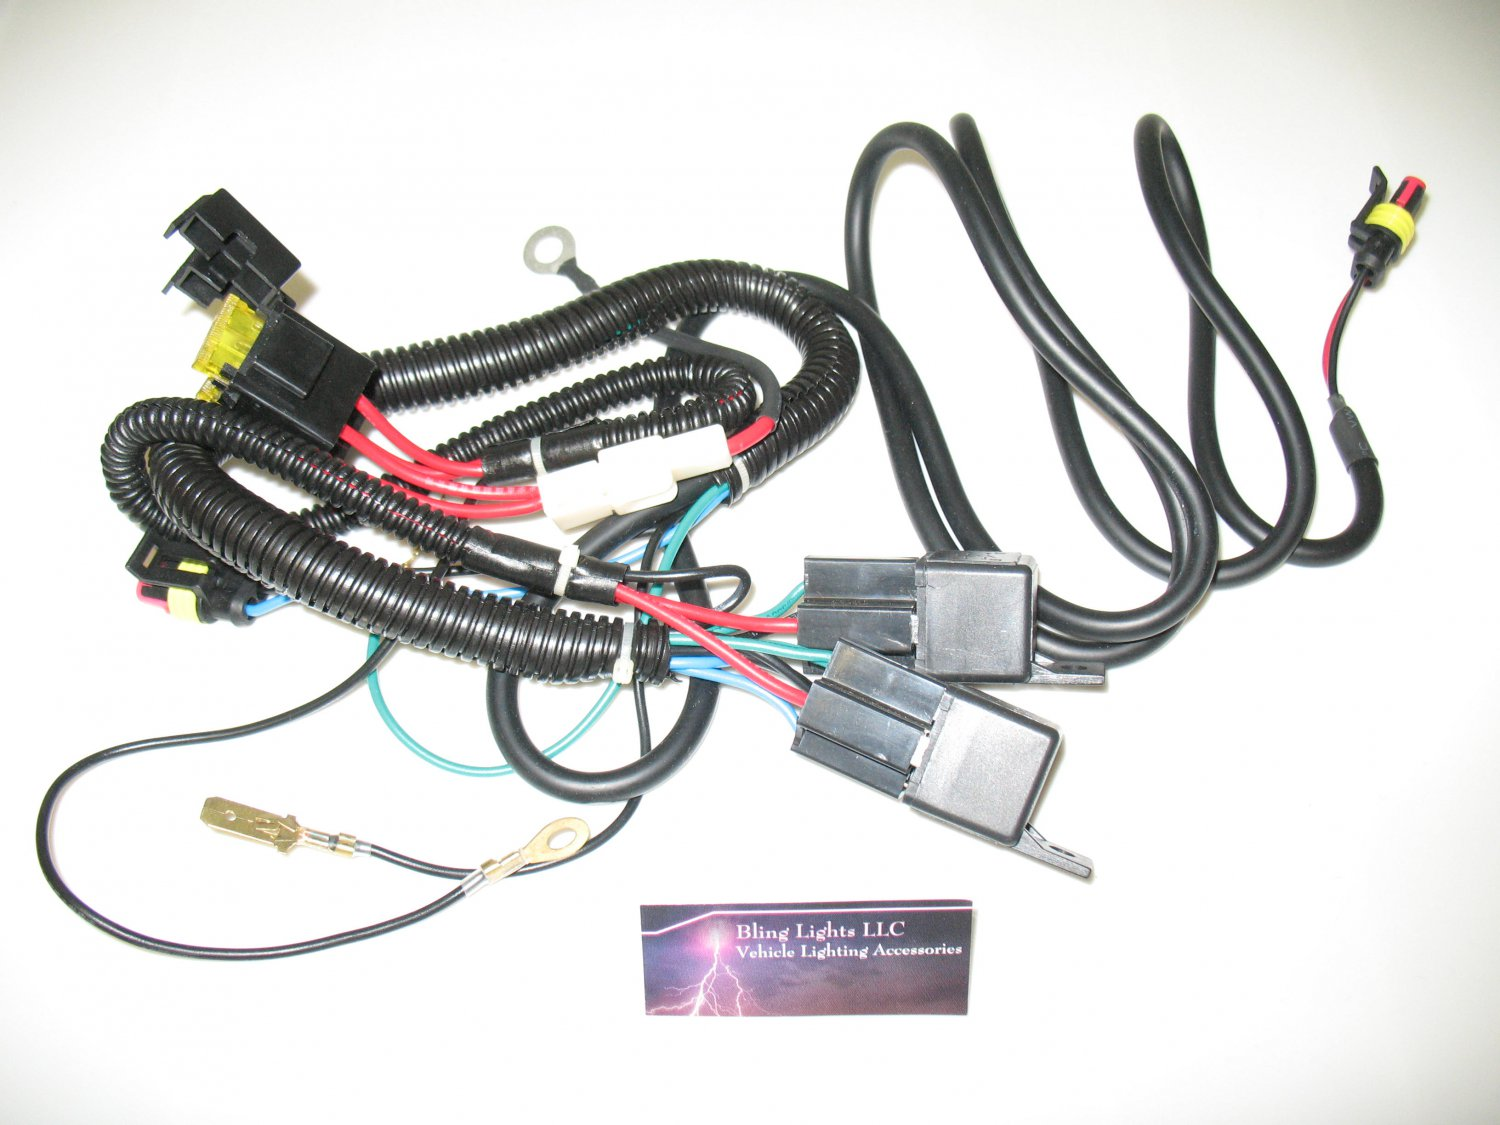 Putco H4 9003 Heavy Duty Headlight Upgrade Wiring Harness Kit Led Headlamp Kc Hilites H13 To Conversion Cable Available Via